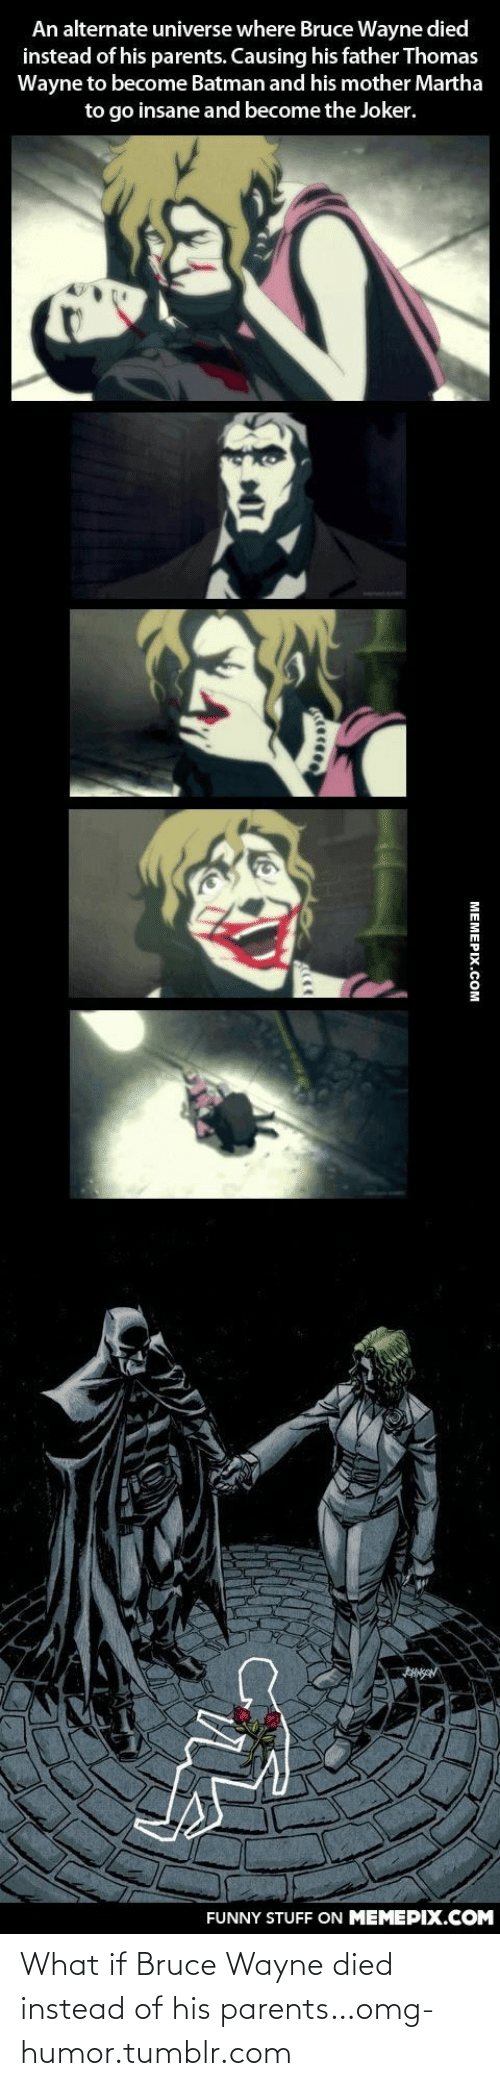 thomas wayne: An alternate universe where Bruce Wayne died  instead of his parents. Causing his father Thomas  Wayne to become Batman and his mother Martha  to go insane and become the Joker.  HNSAN  FUNNY STUFF ON MEMEPIX.COM  МЕМЕРХ.Сом What if Bruce Wayne died instead of his parents…omg-humor.tumblr.com